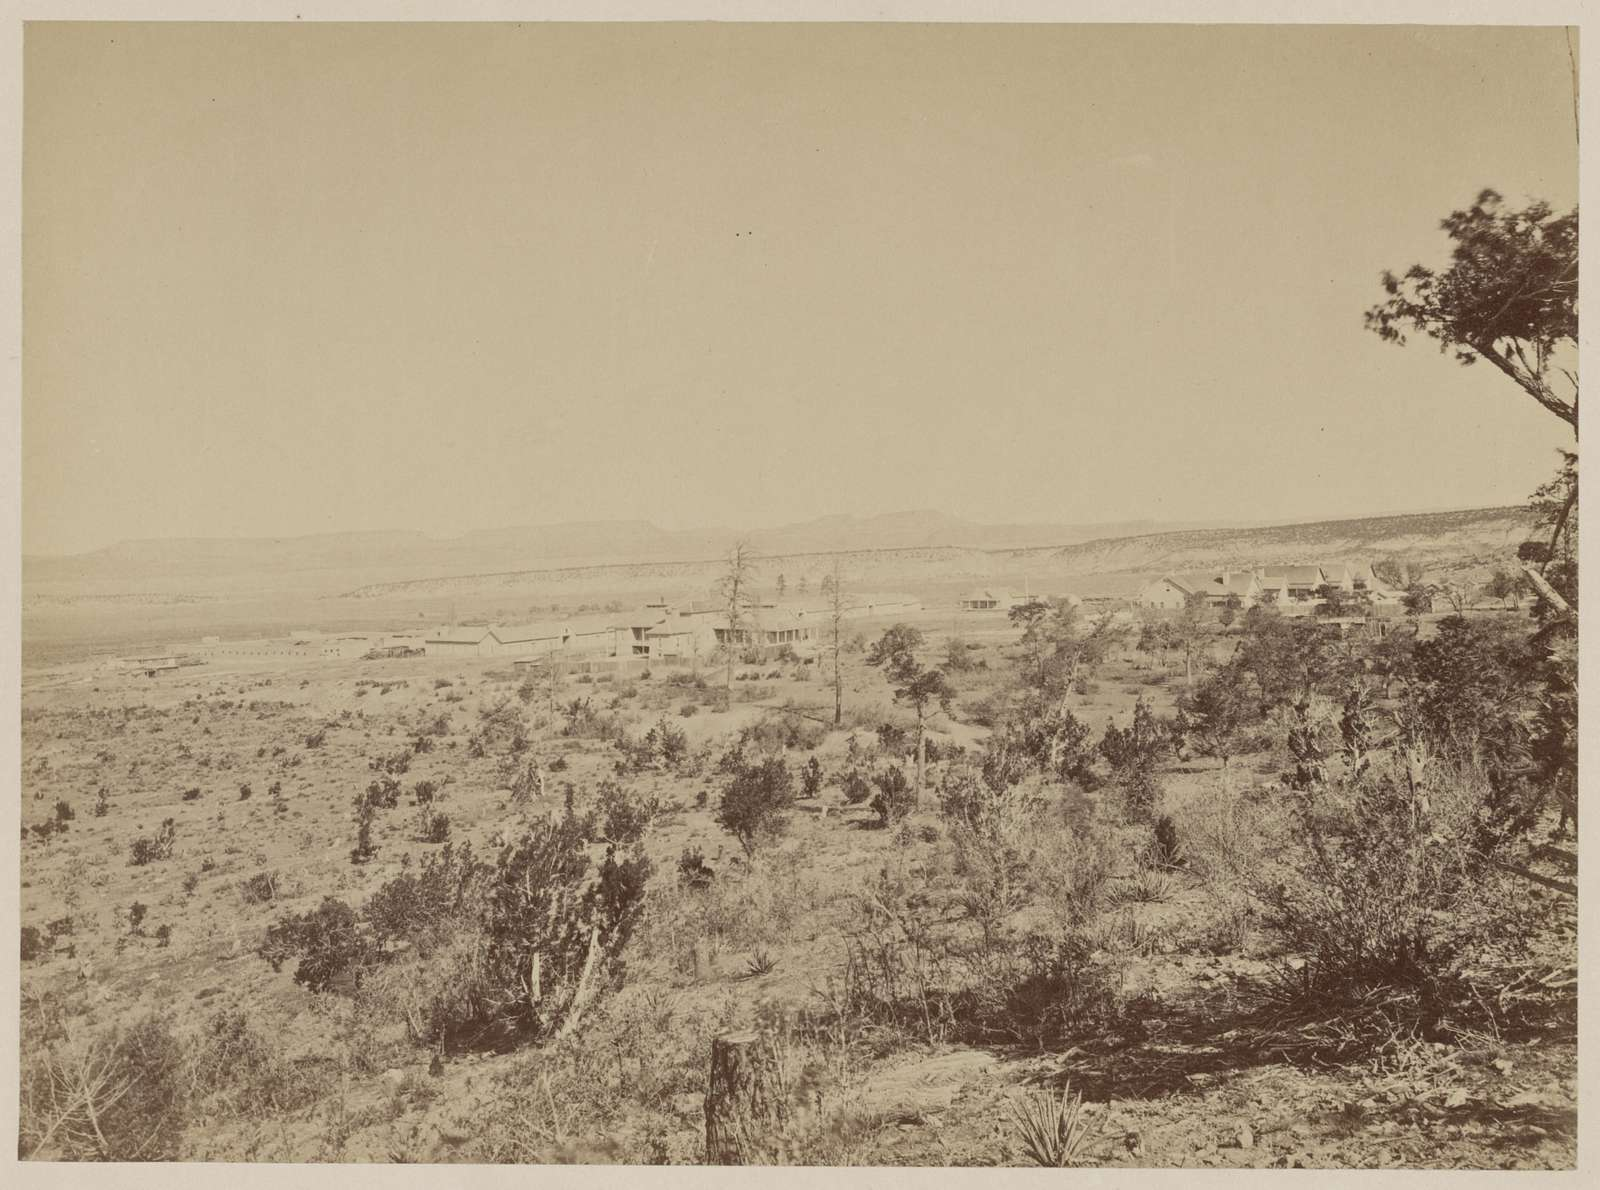 Distant view of Fort Wingate, New Mexico, 1873 / T. H. O'Sullivan, photographer.